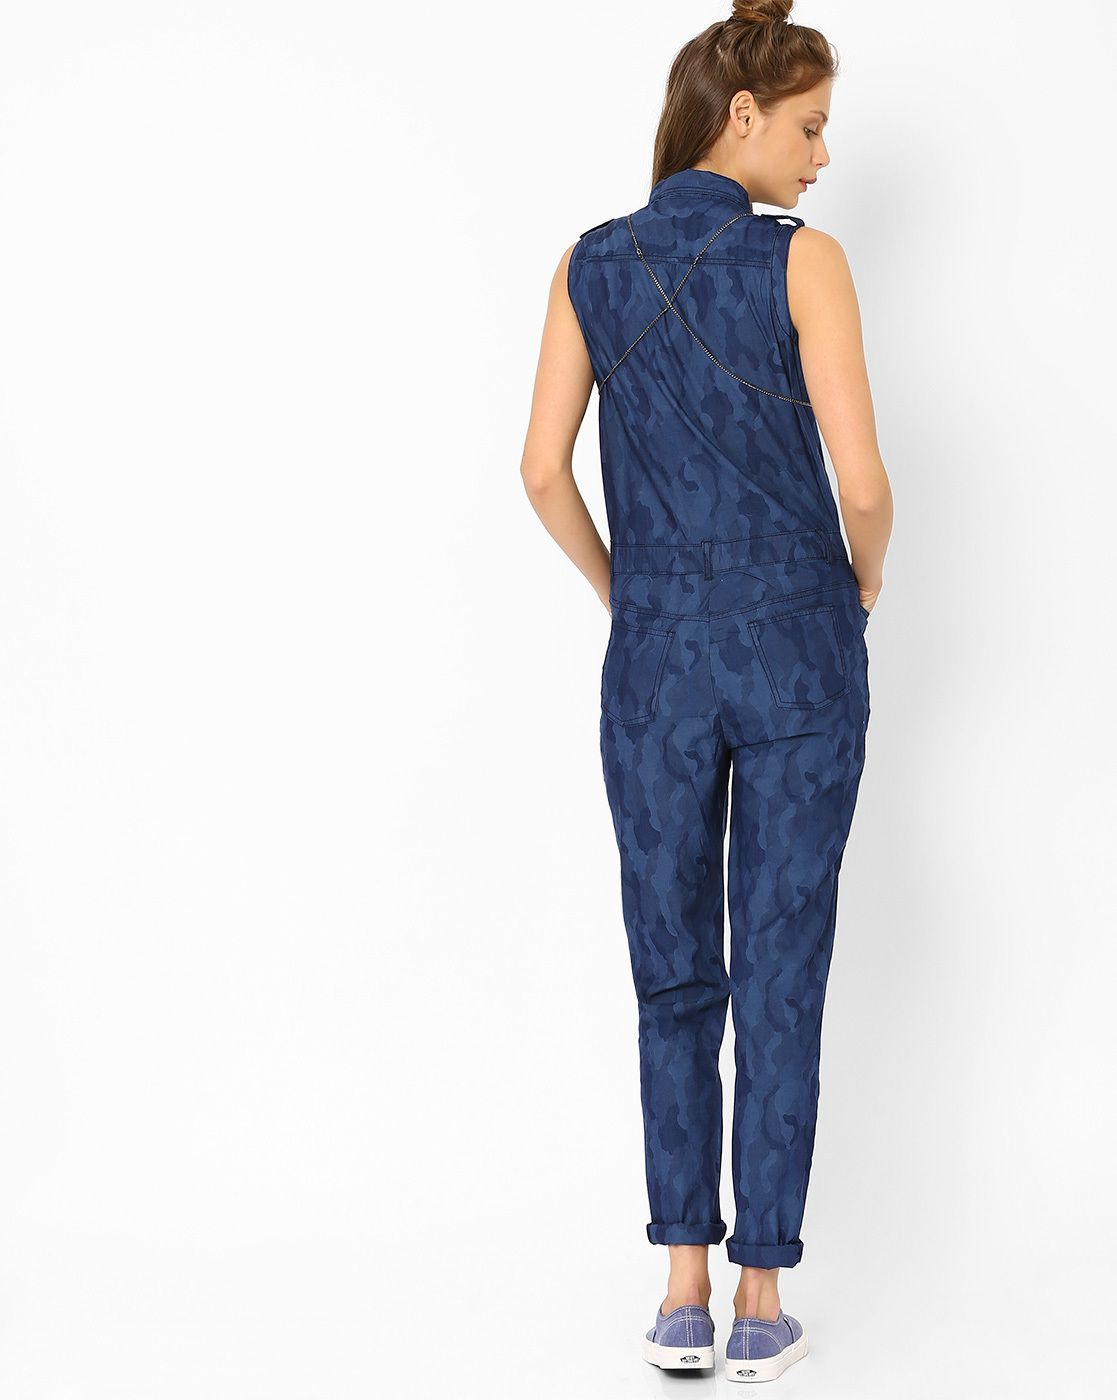 200ccd962079 Denim Jumpsuit with Camouflage Print